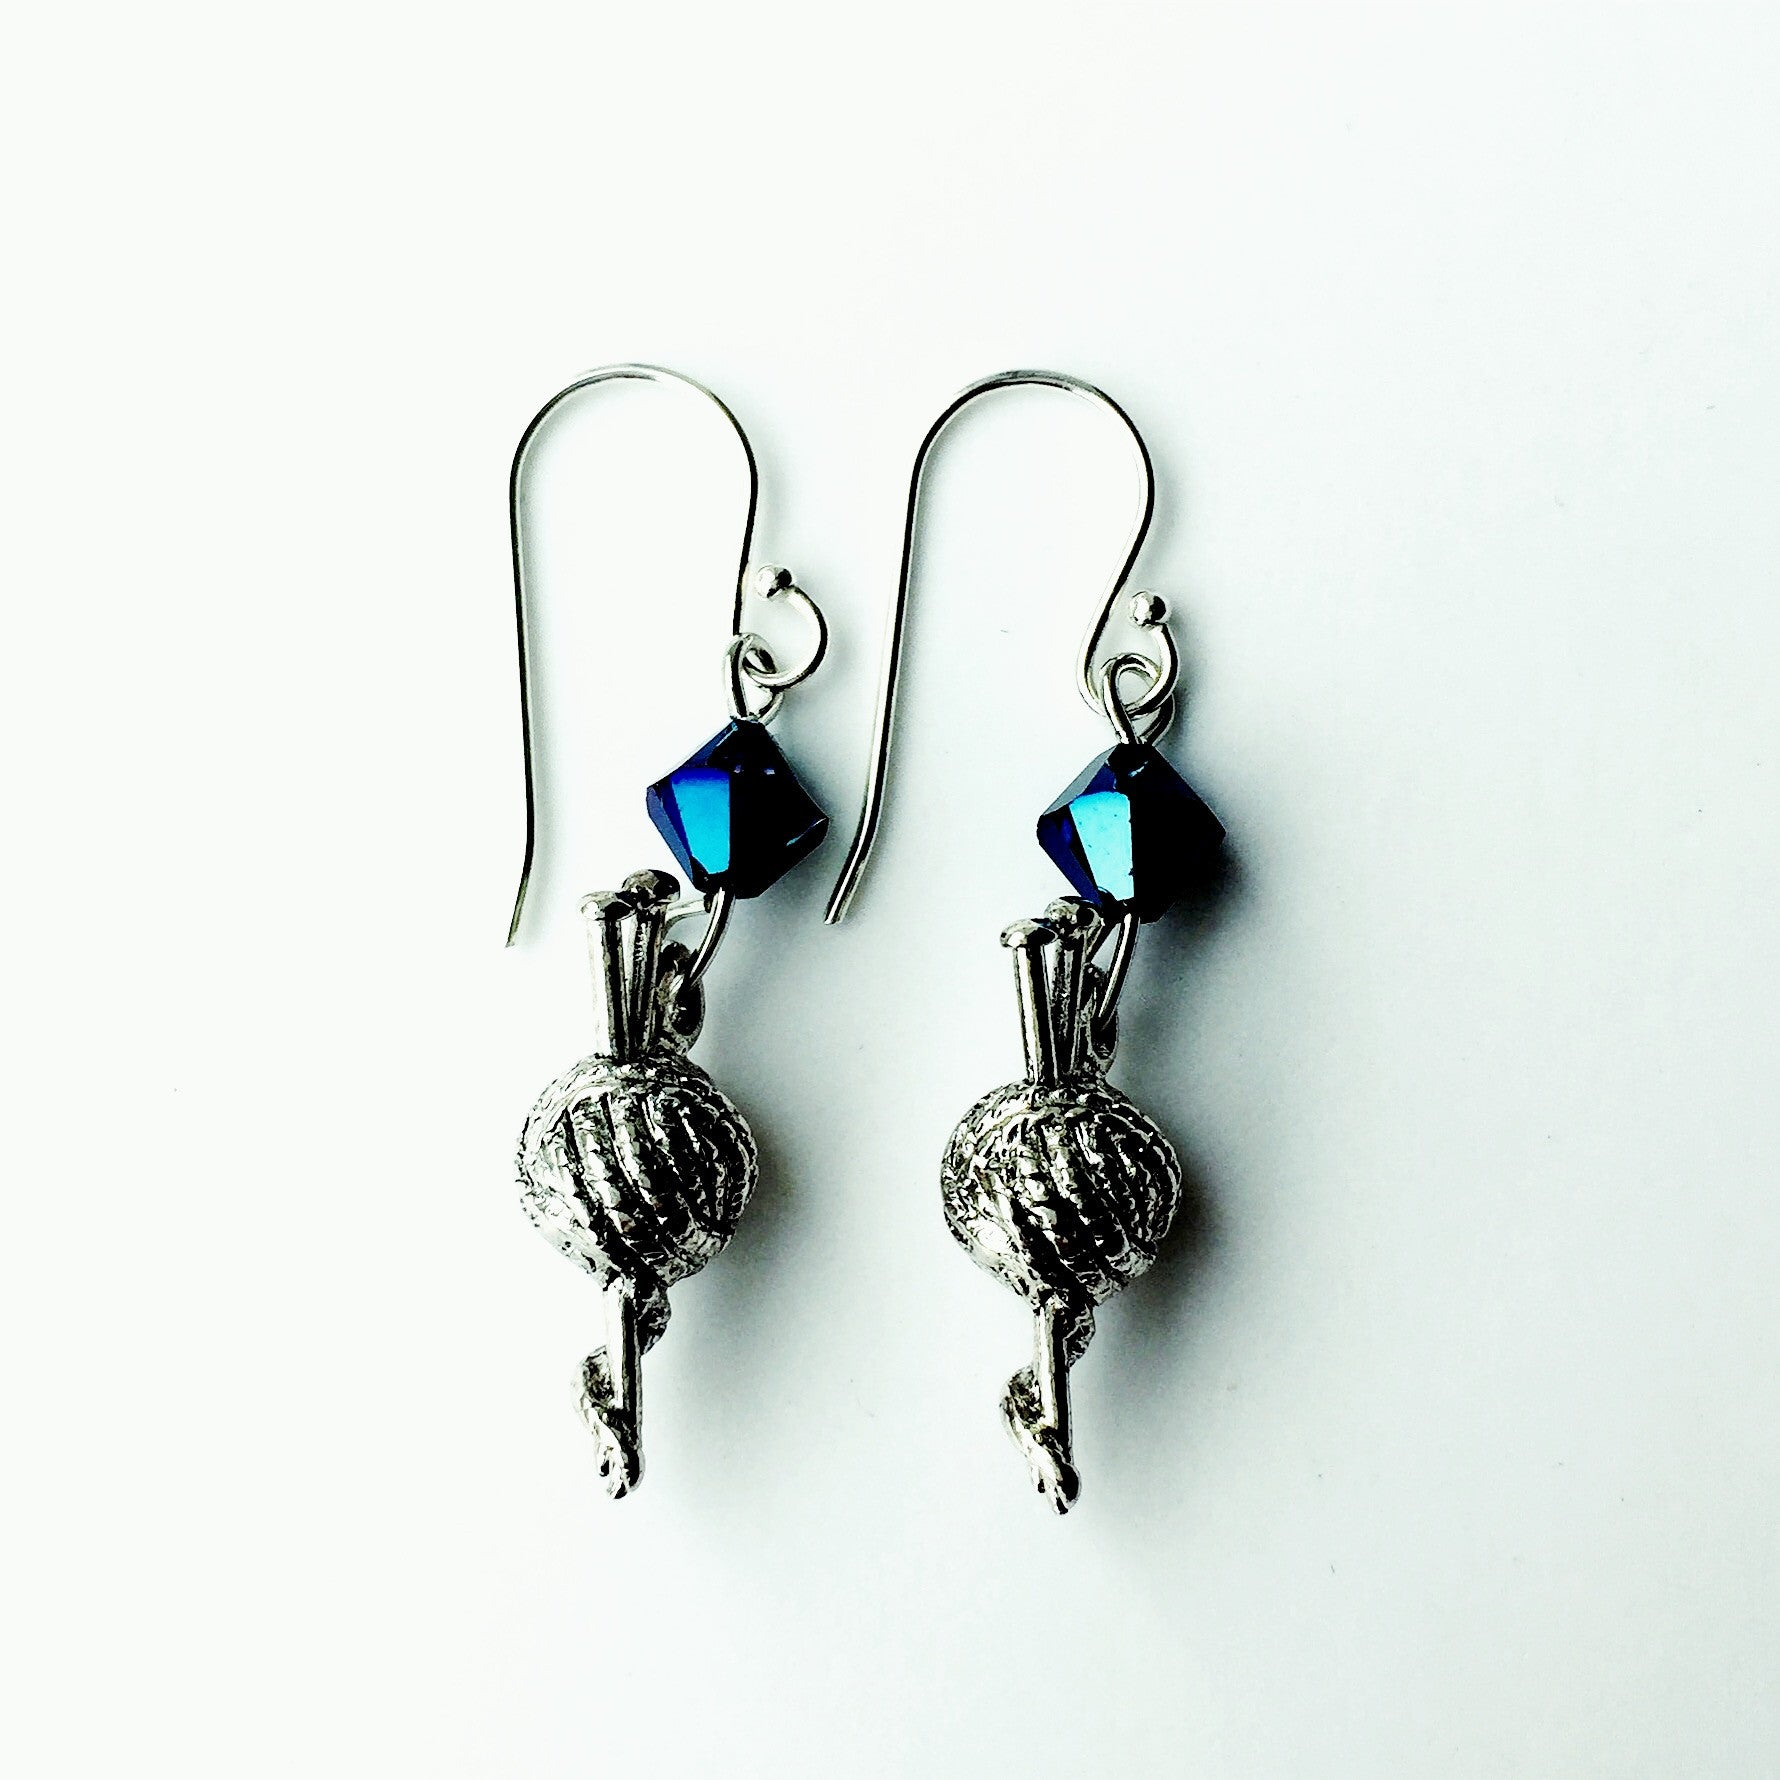 ____ Ball of Thread Silver Earrings with Blue Swarovski Crystals.